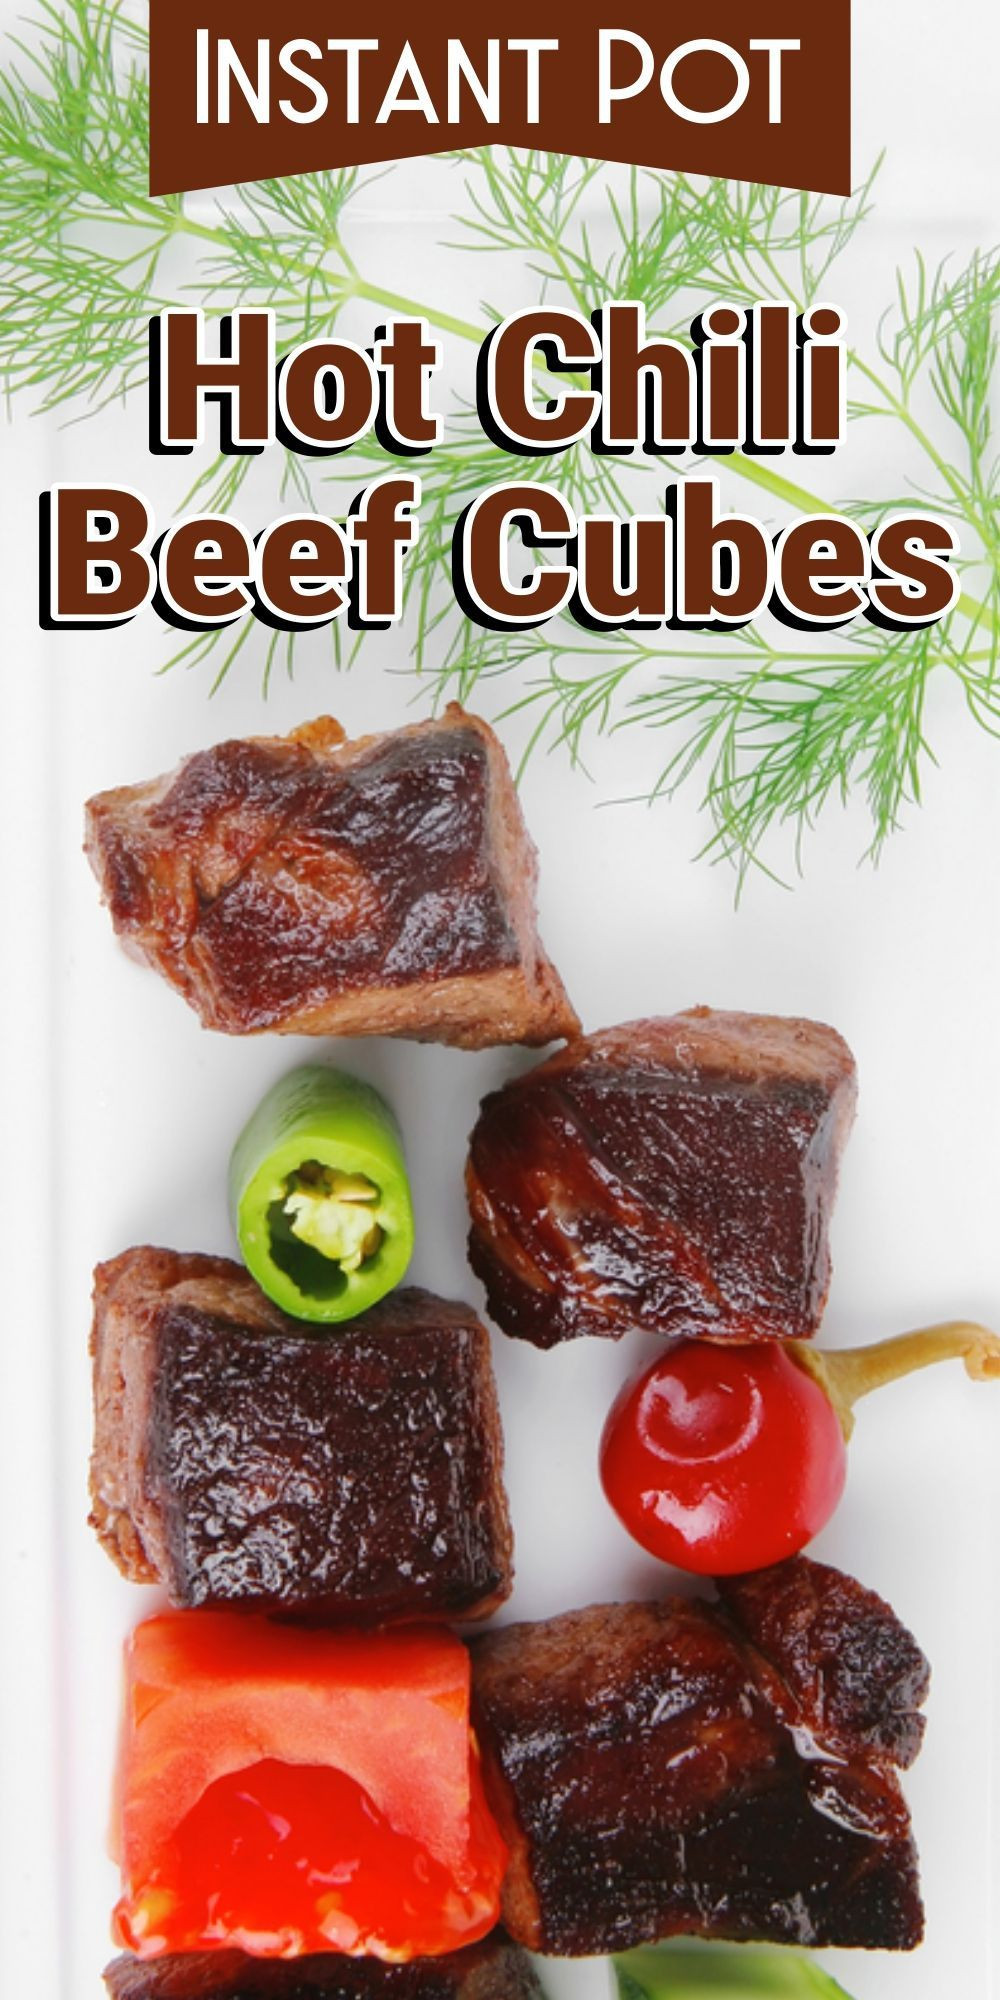 Chili With Beef Cubes  Instant Pot Hot Chili Beef Cubes Recipe